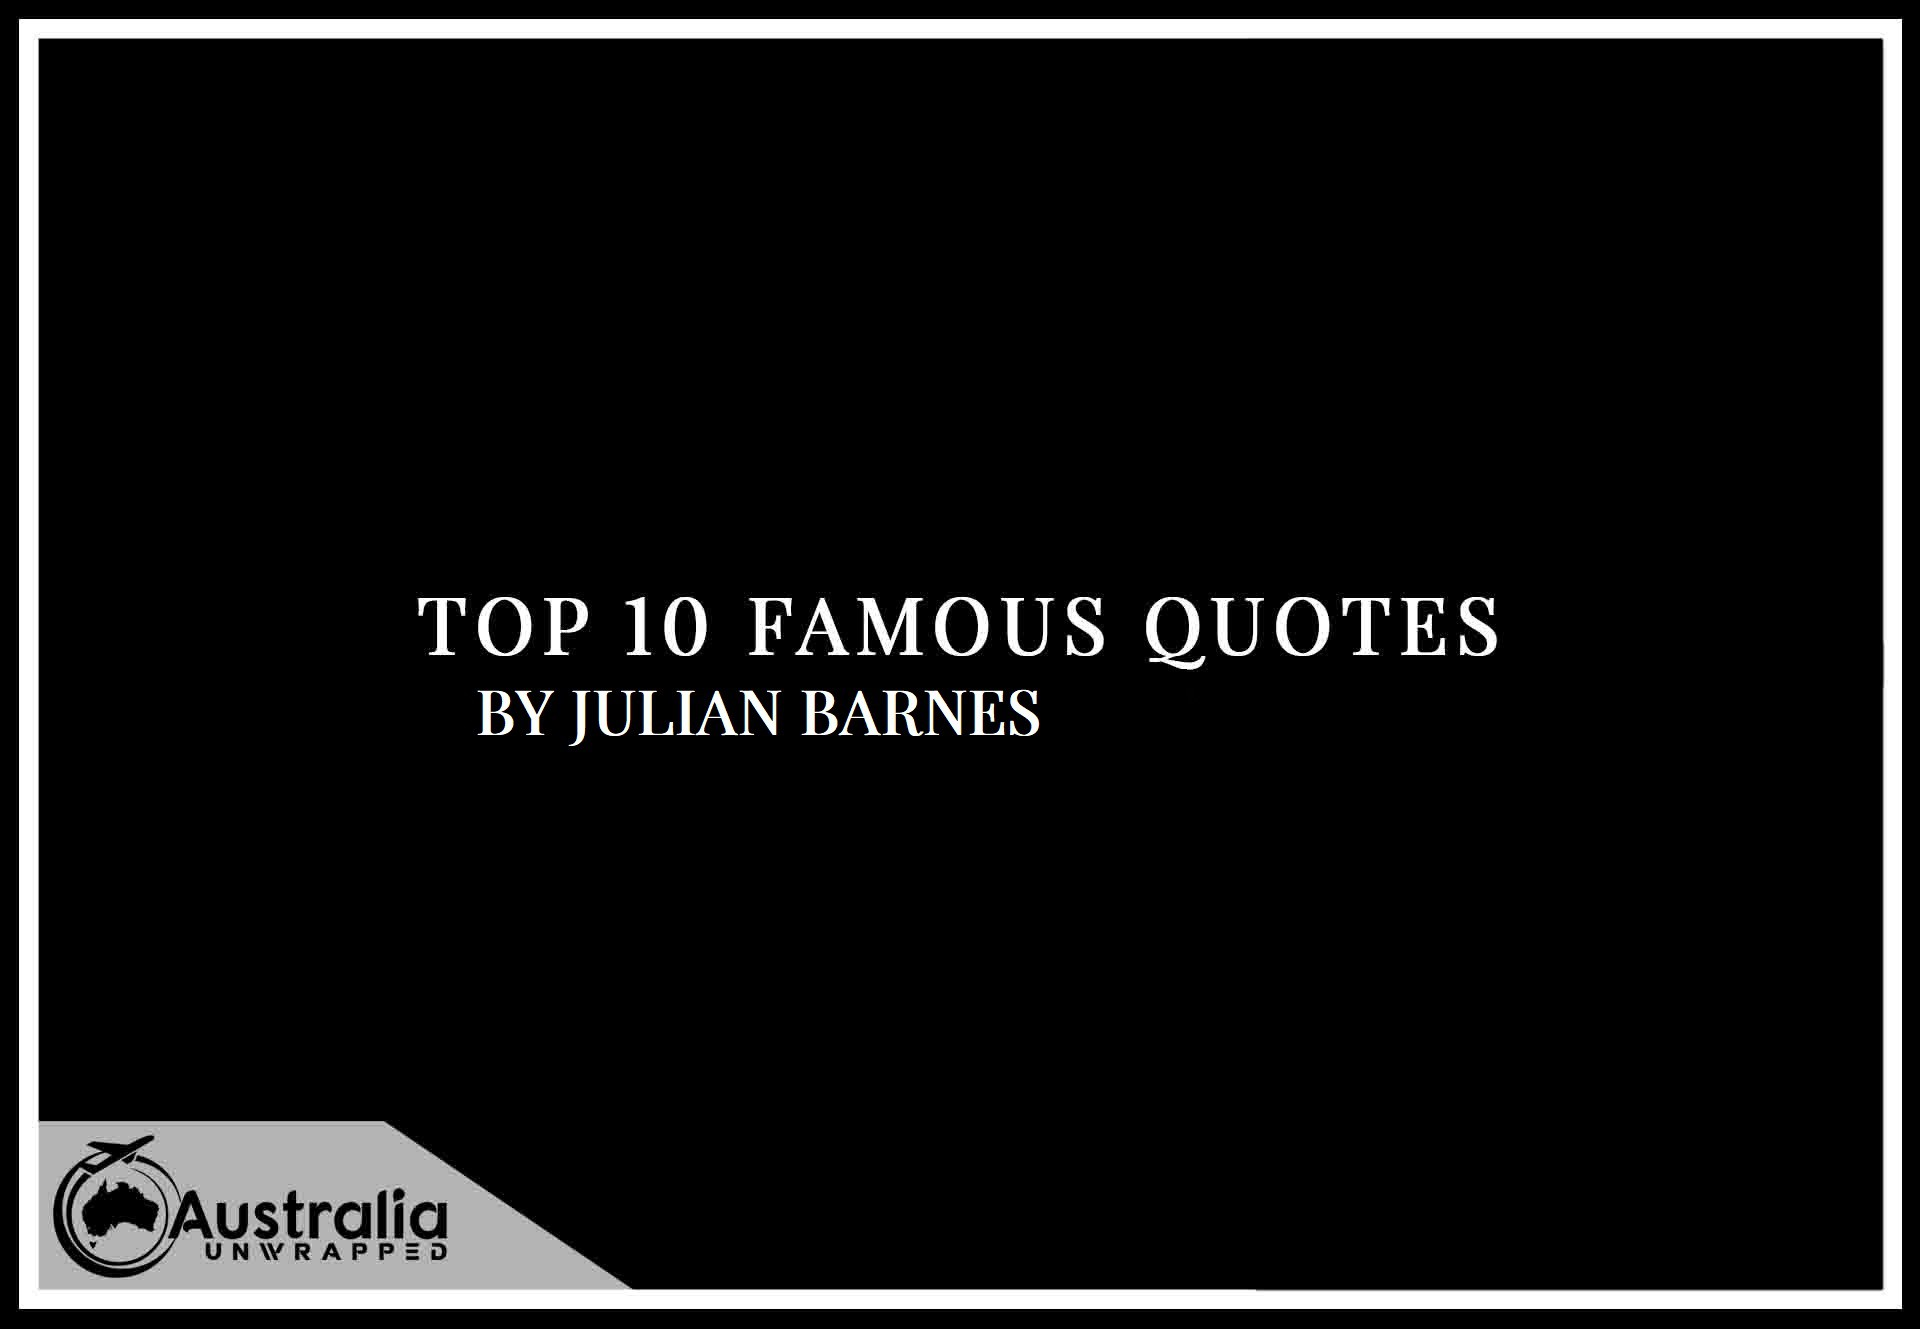 Top 10 Famous Quotes by Author Julian Barnes